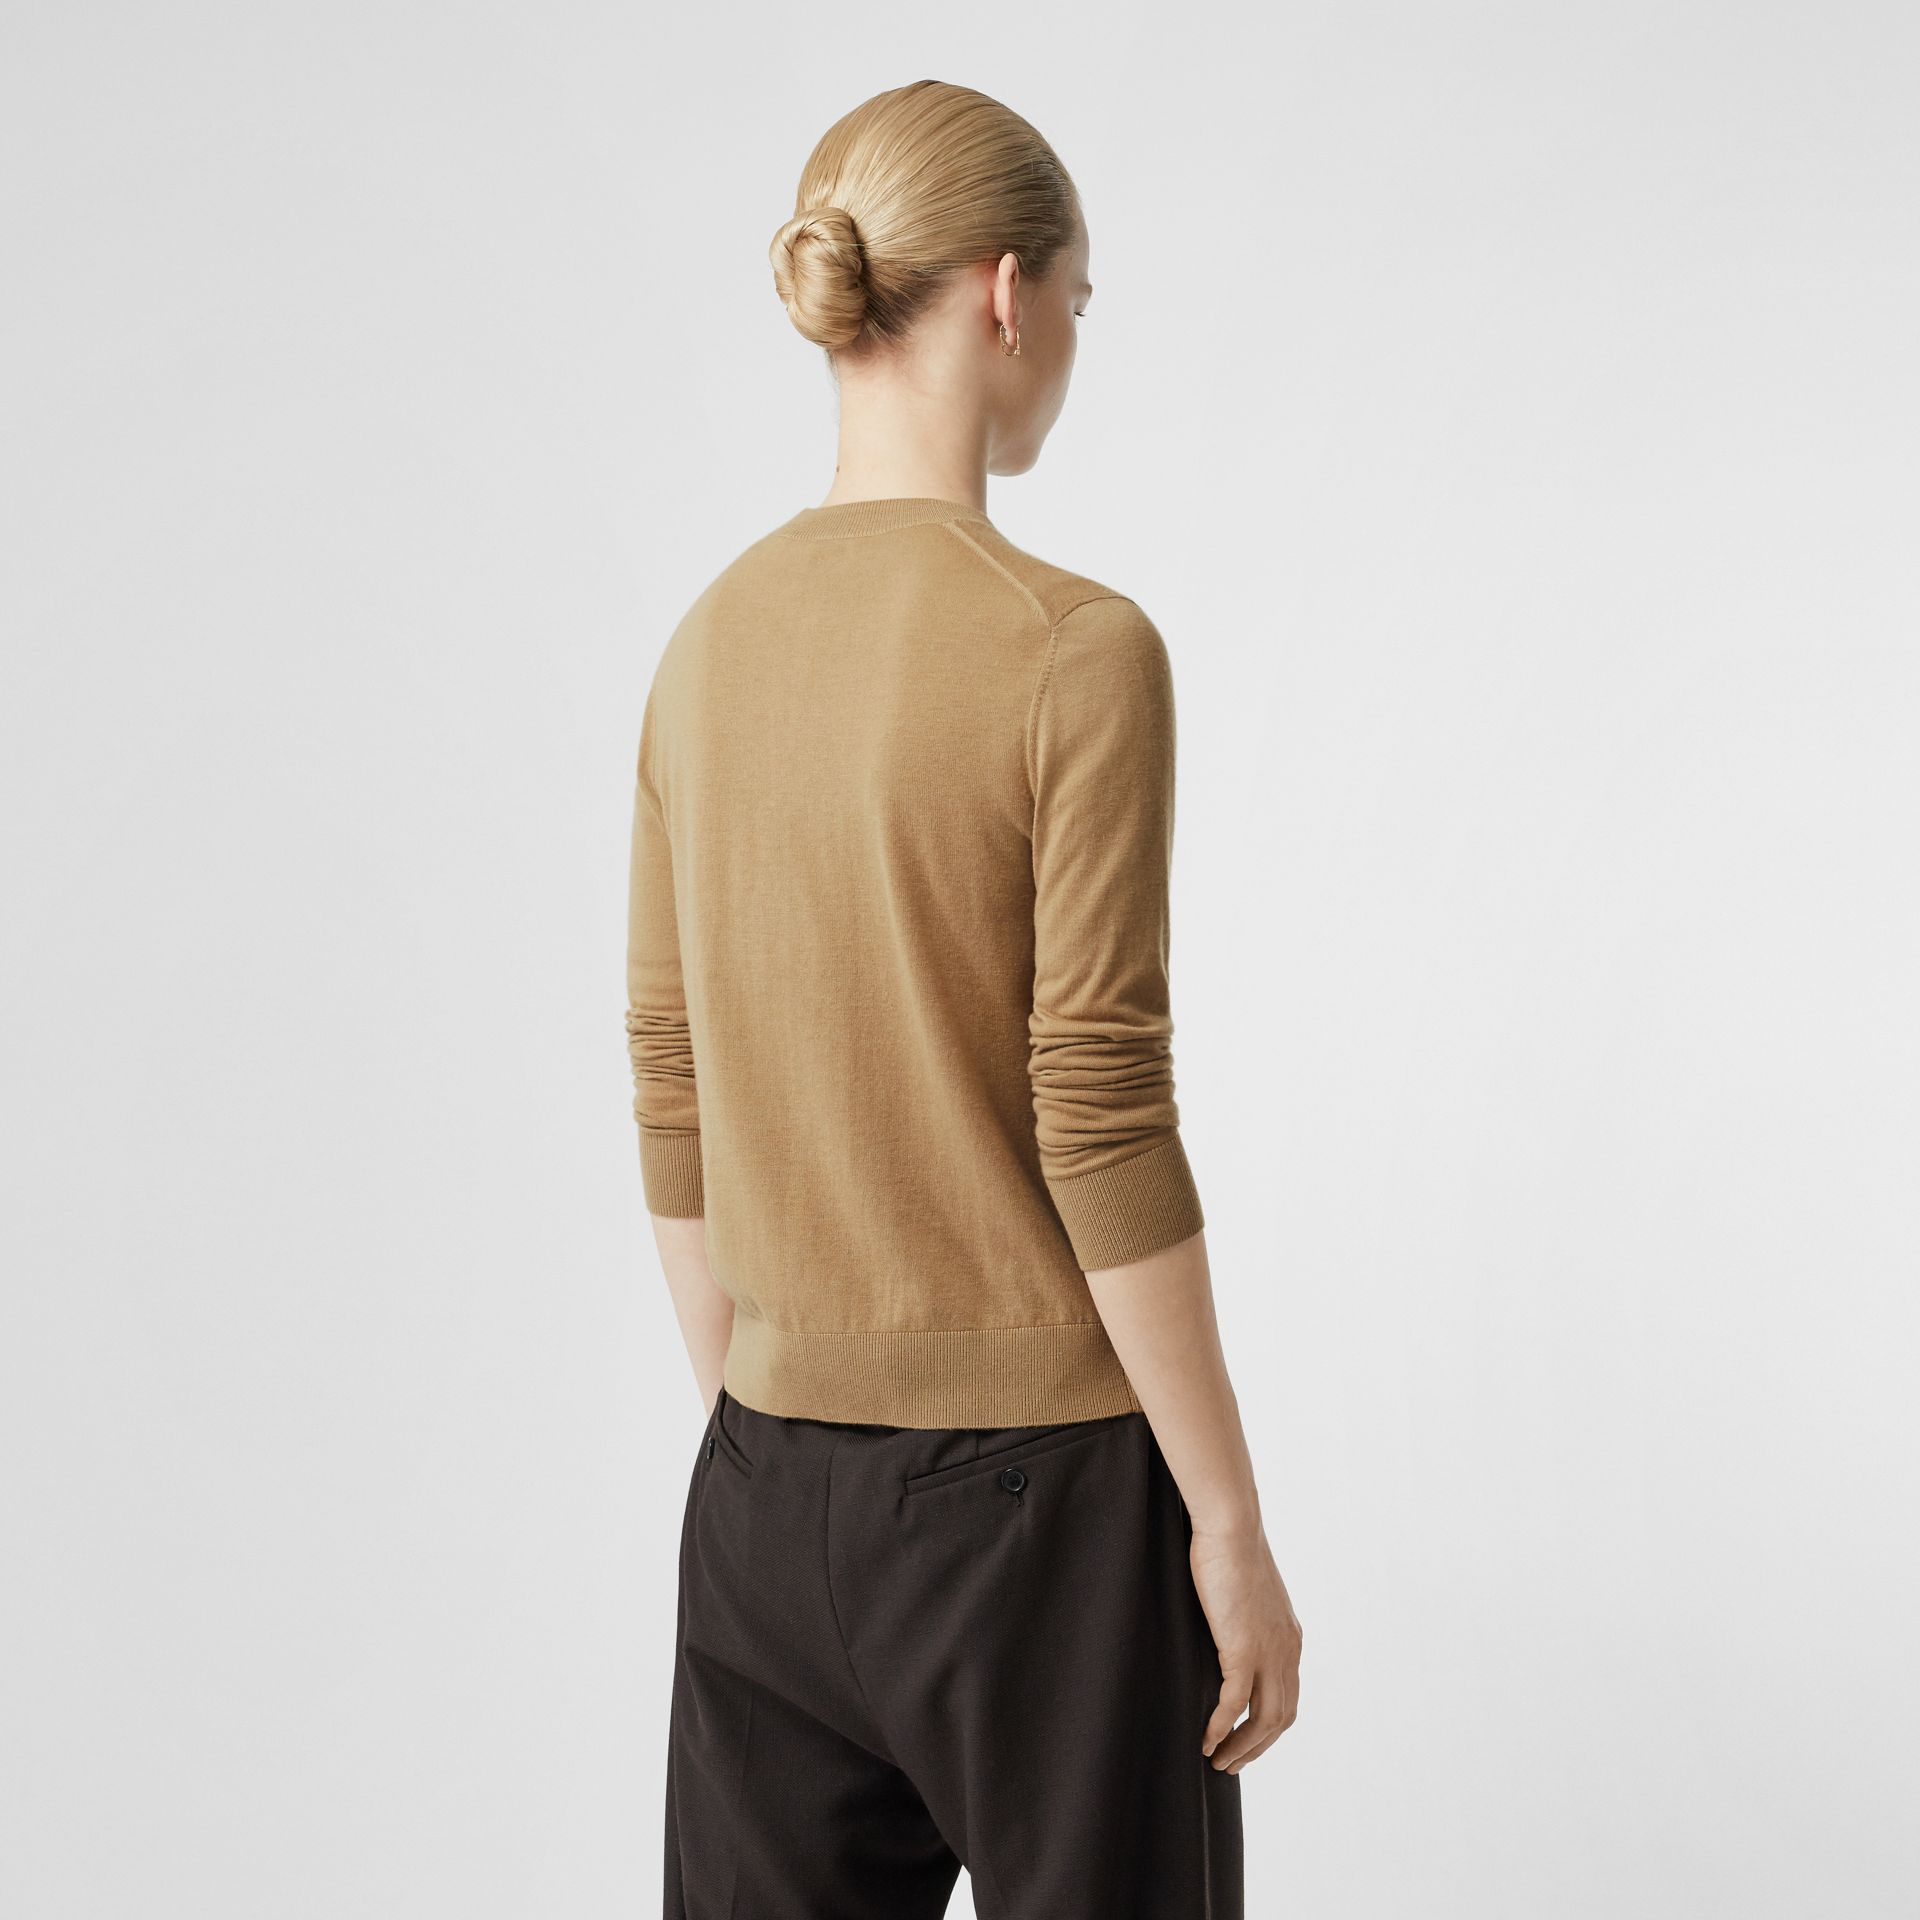 Monogram Motif Cashmere Cardigan in Camel - Women | Burberry United Kingdom - gallery image 2